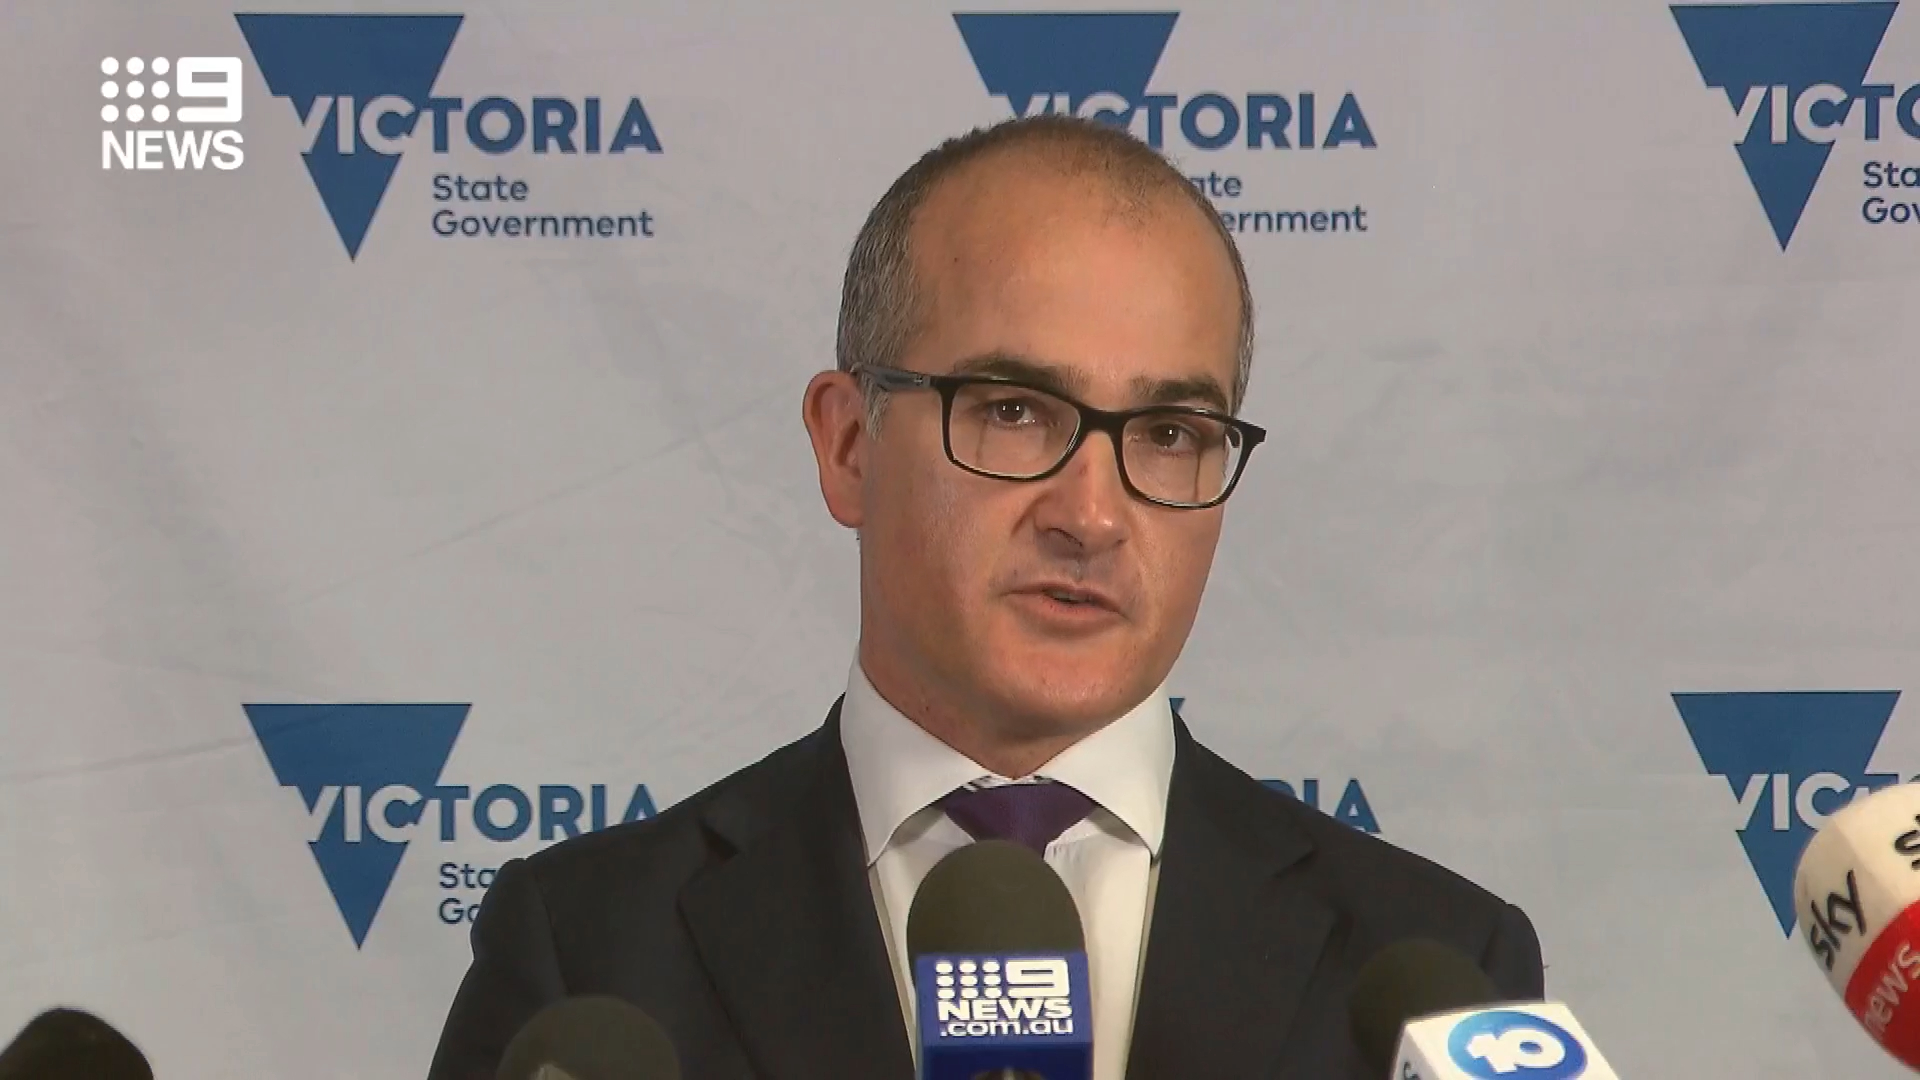 Restrictions significantly ease in Victoria